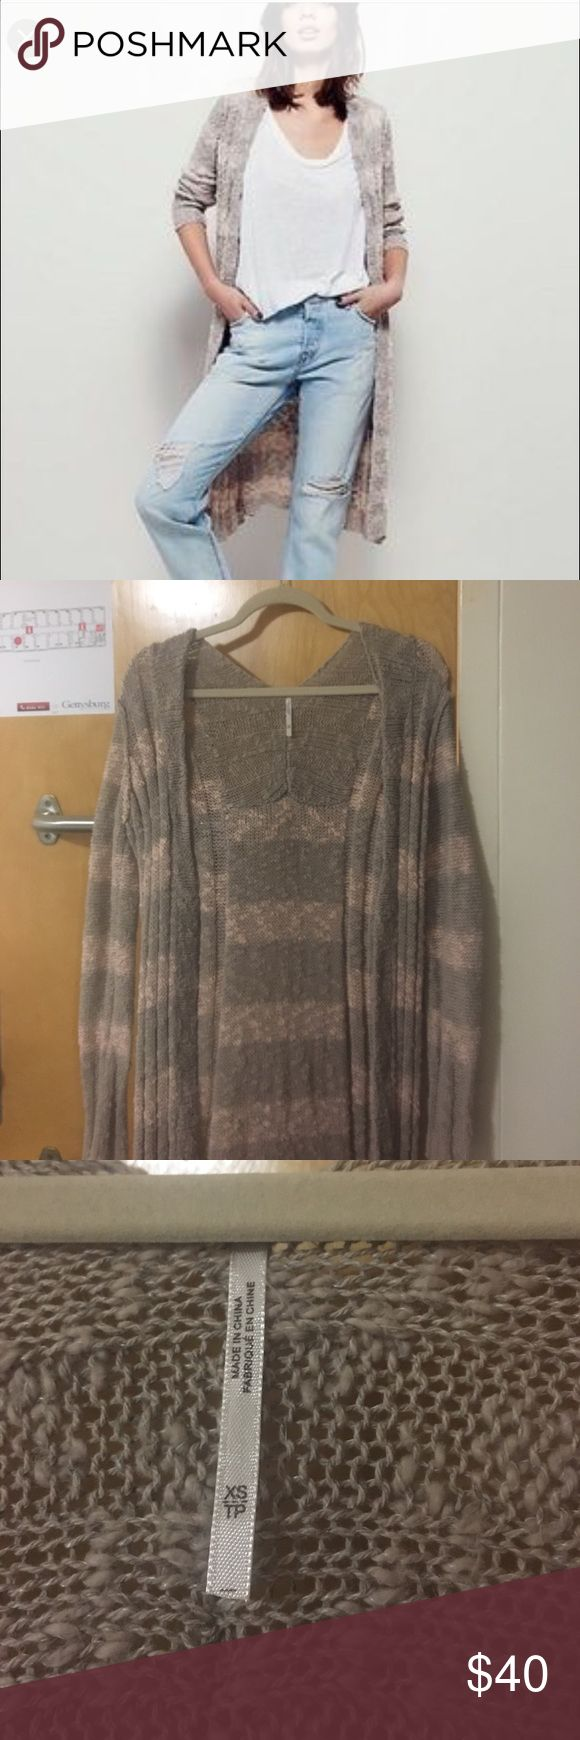 Free People Long Knit Cardigan beige and blush striped knit long cardigan, goes to about mid calf. never worn Free People Sweaters Cardigans